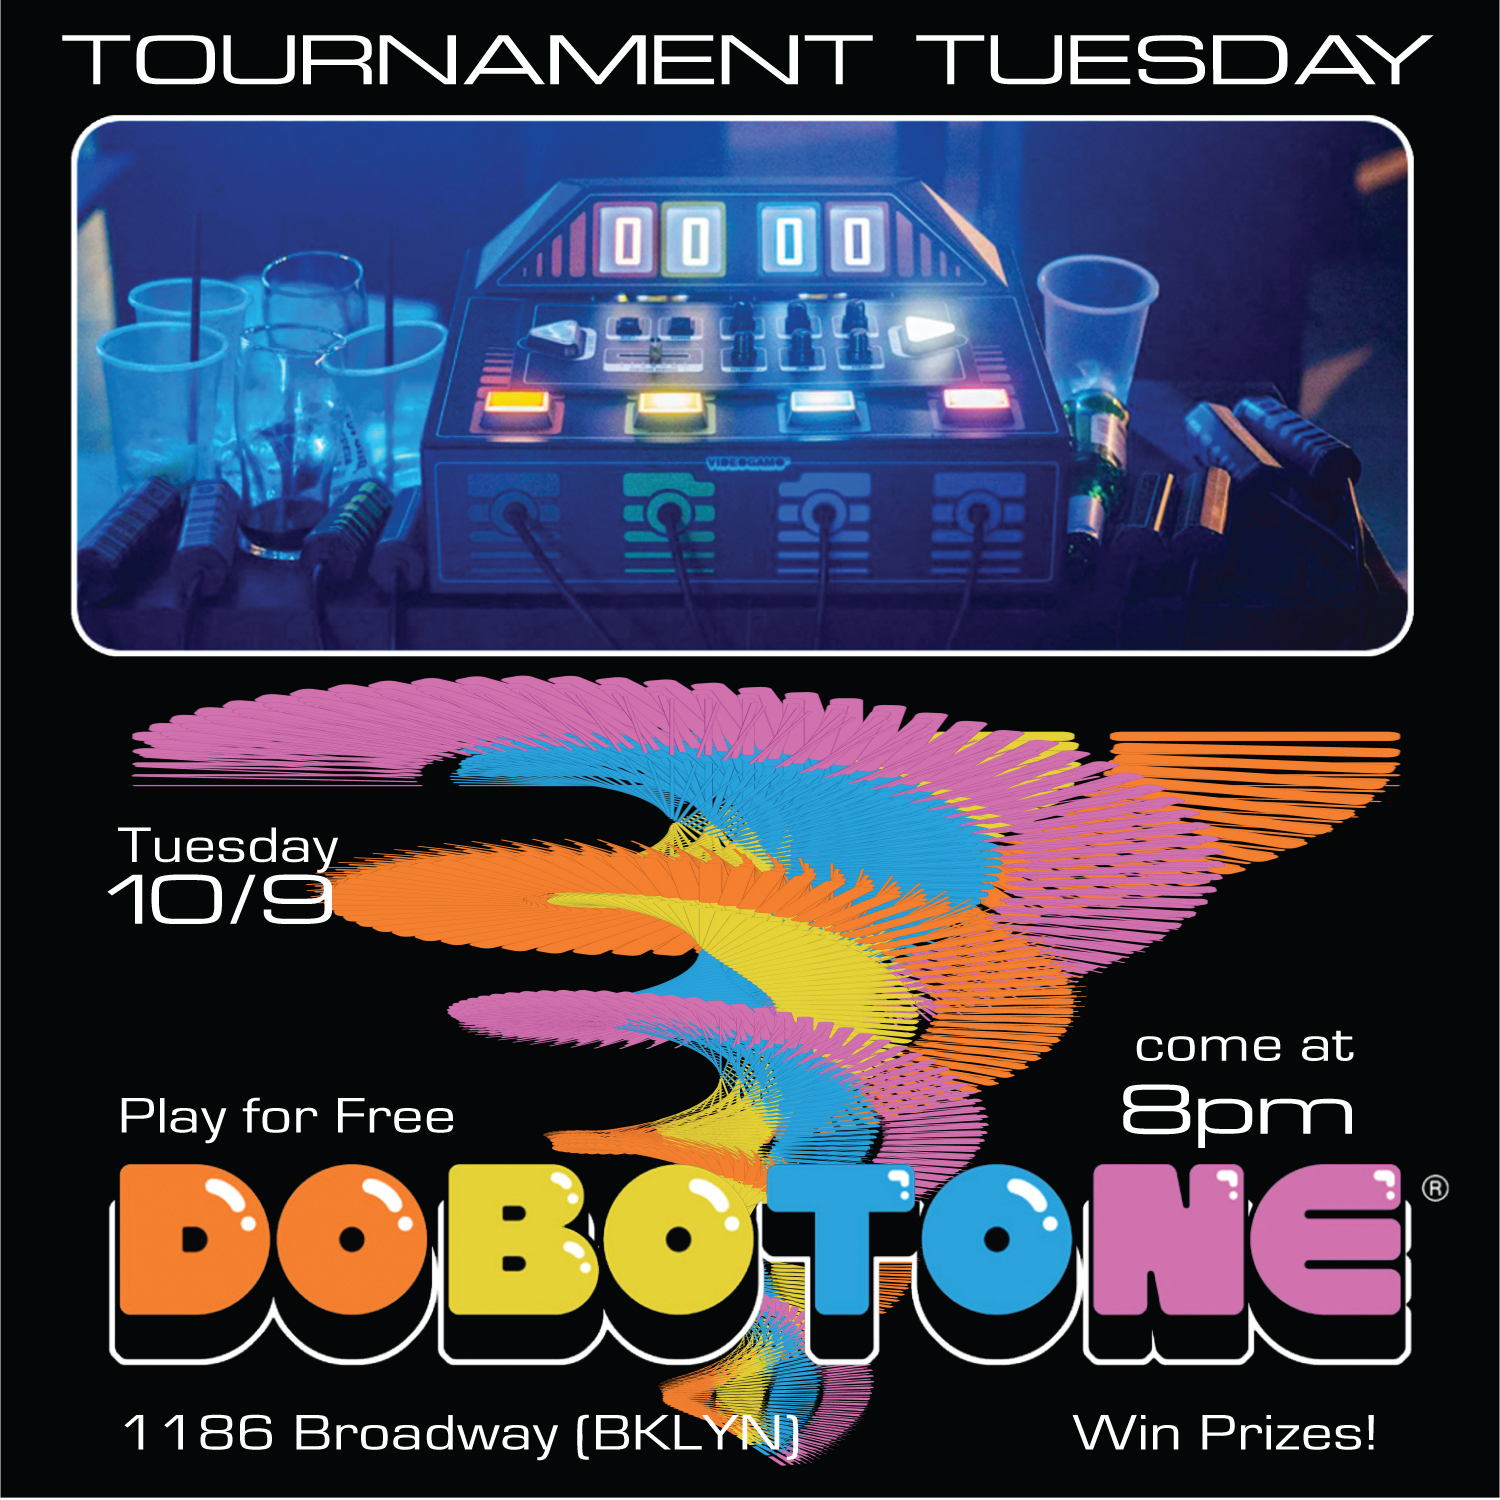 Tickets:  https://withfriends.co/event/2573347/tournament_tuesday_dobotone   Free to Play and Compete!  September 10th - 8PM  HACK OR BE HACKED. DOBOTONE is a 5-player video game console specially designed for partying. Play simple, intuitive, puzzly, action mini-games with two-button controllers, or modify the rules of the game by using the knobs and buttons on the console: Become the fairest Game Master or the meanest Troll Hacker.